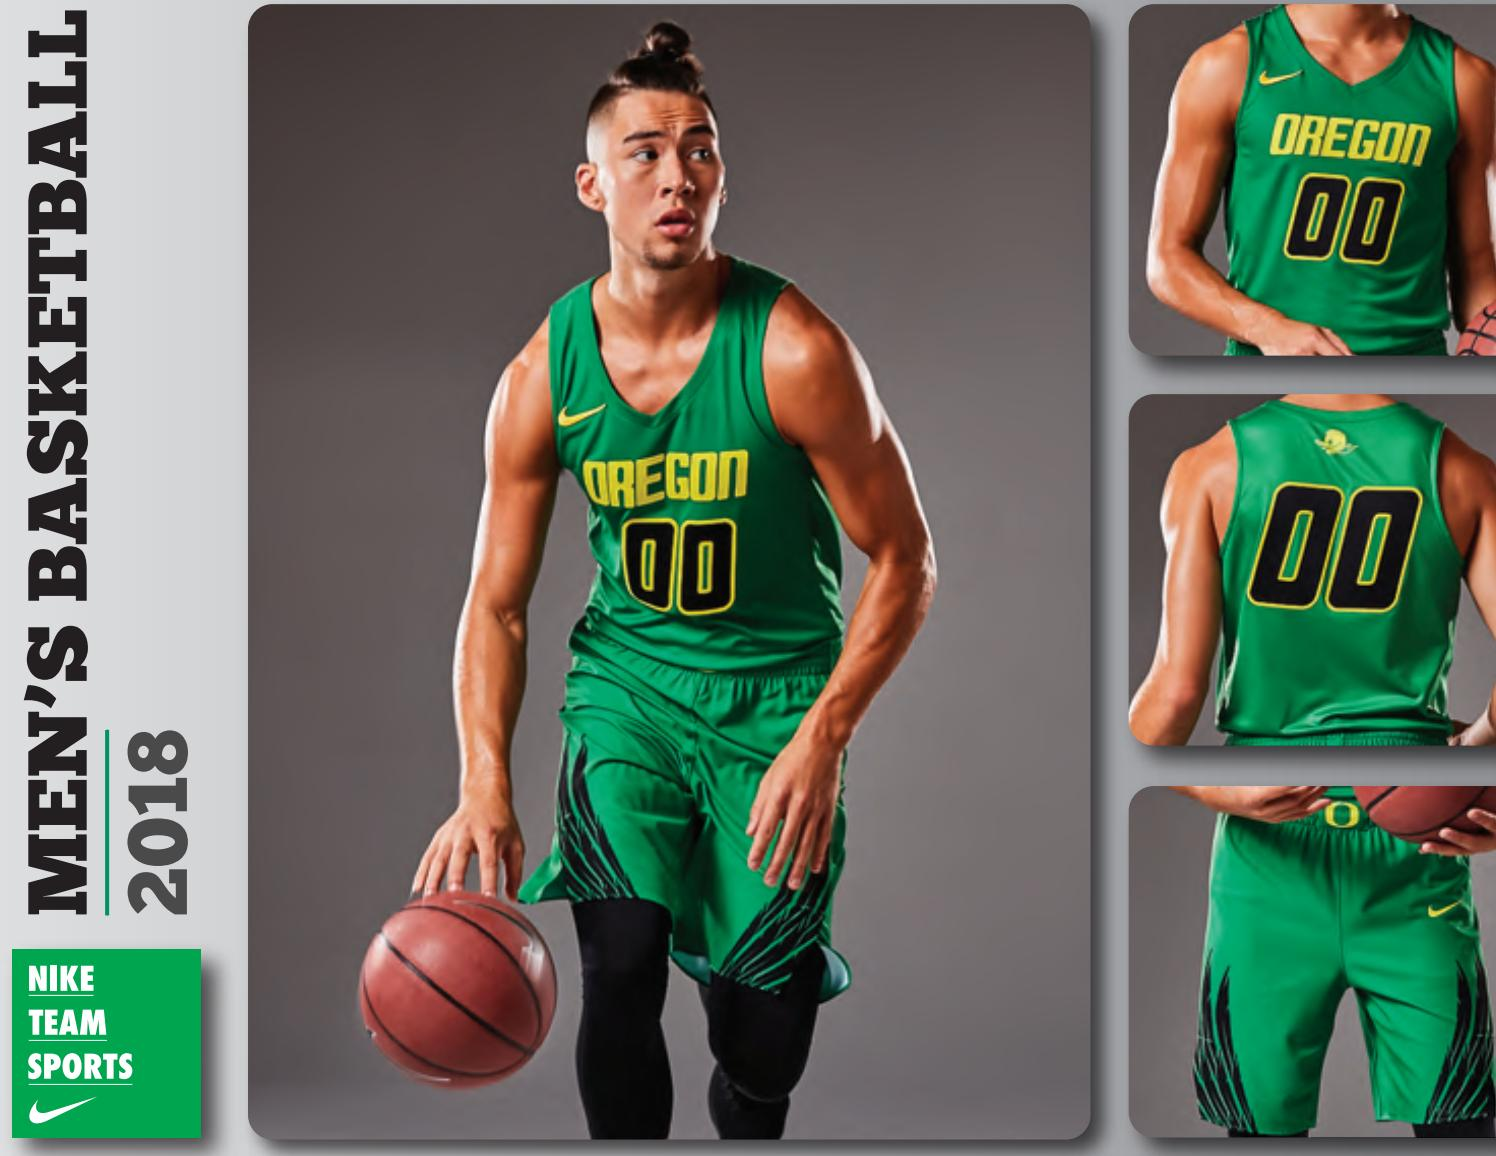 838742f8cd6d Nike Men s Basketball Uniforms by Sports Endeavors - issuu